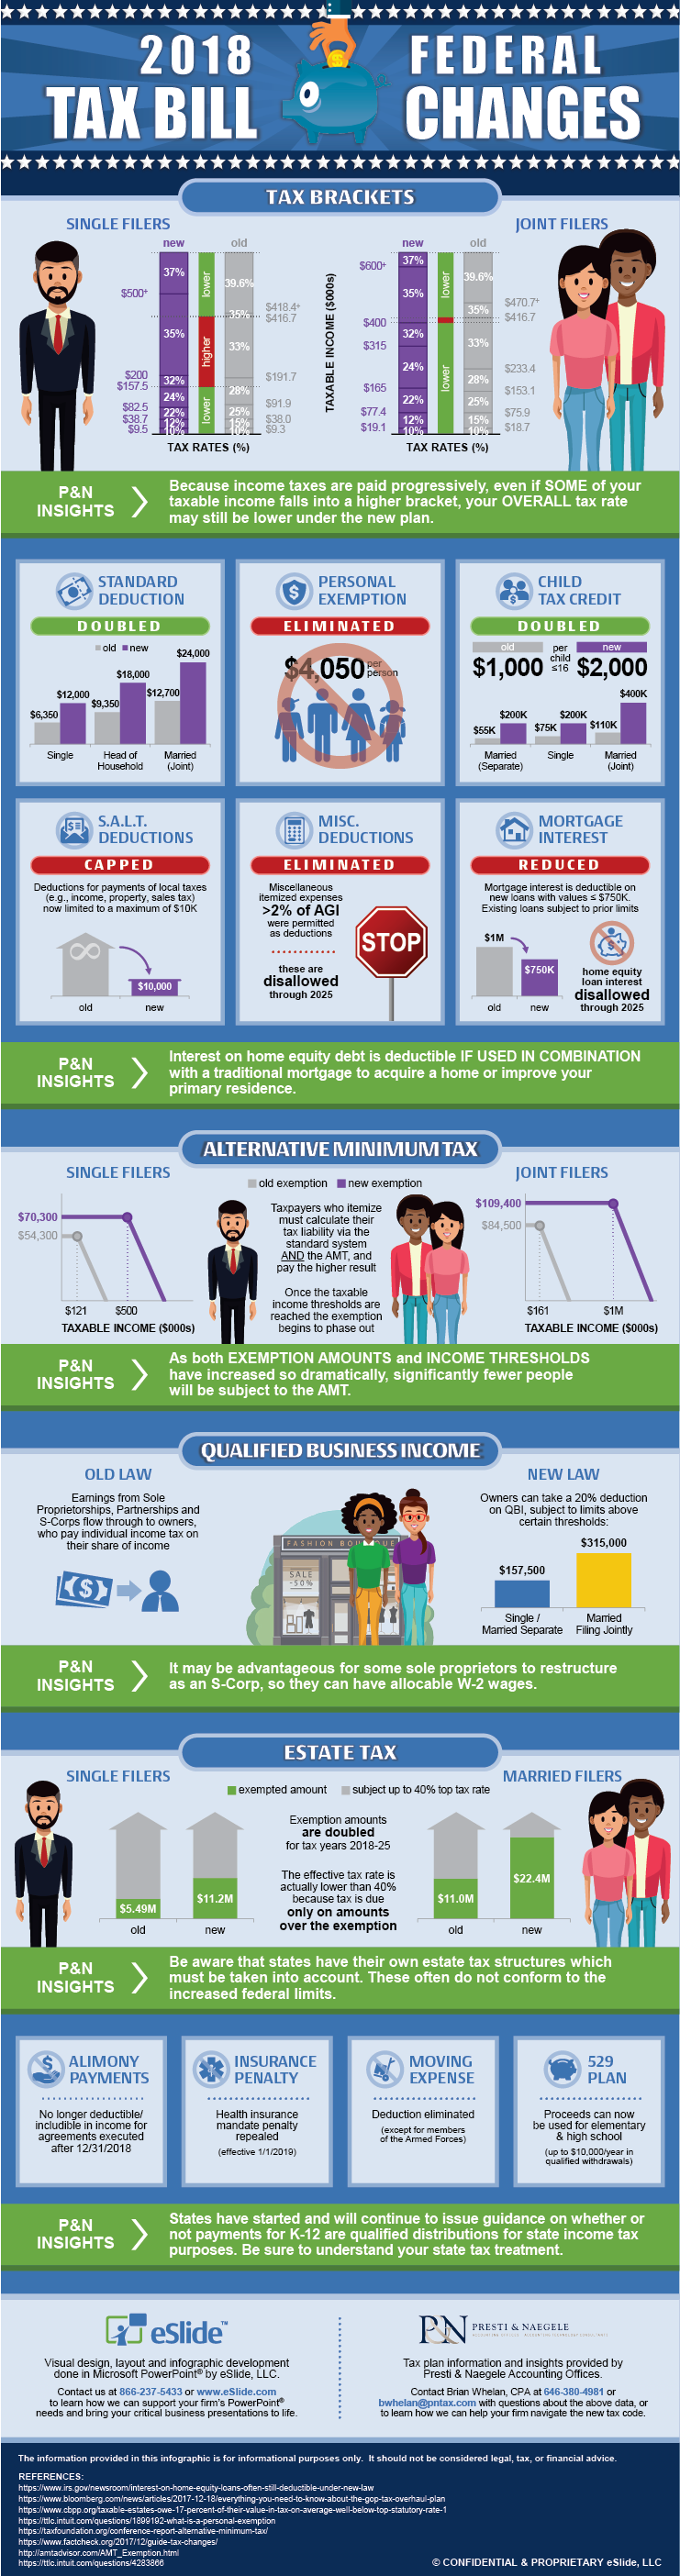 2018 Federal Tax Bill Changes Infographic